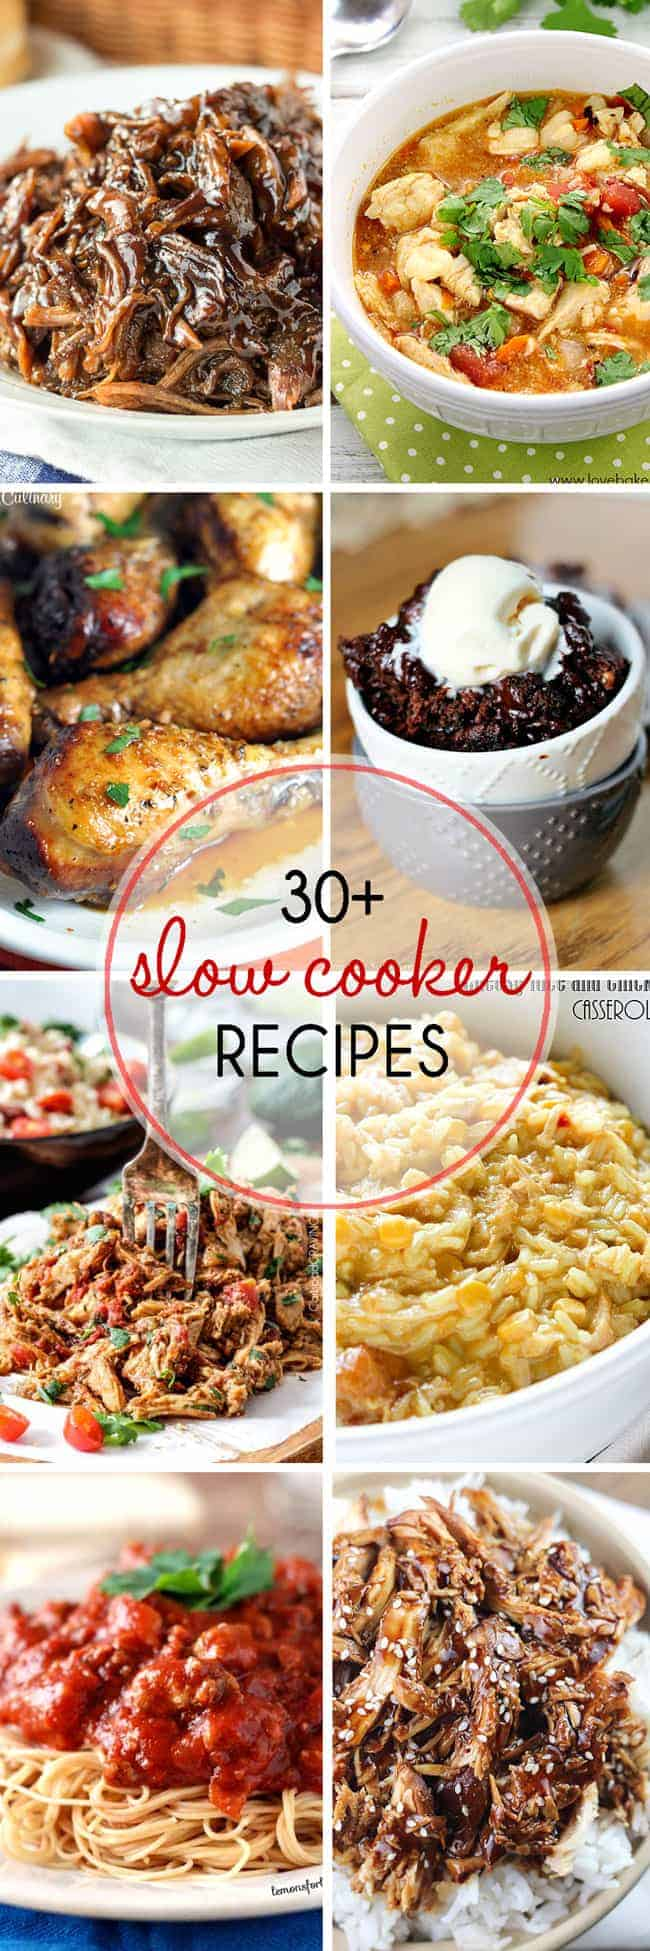 30+ Slow Cooker Recipes -- easy recipes for busy weeknights!